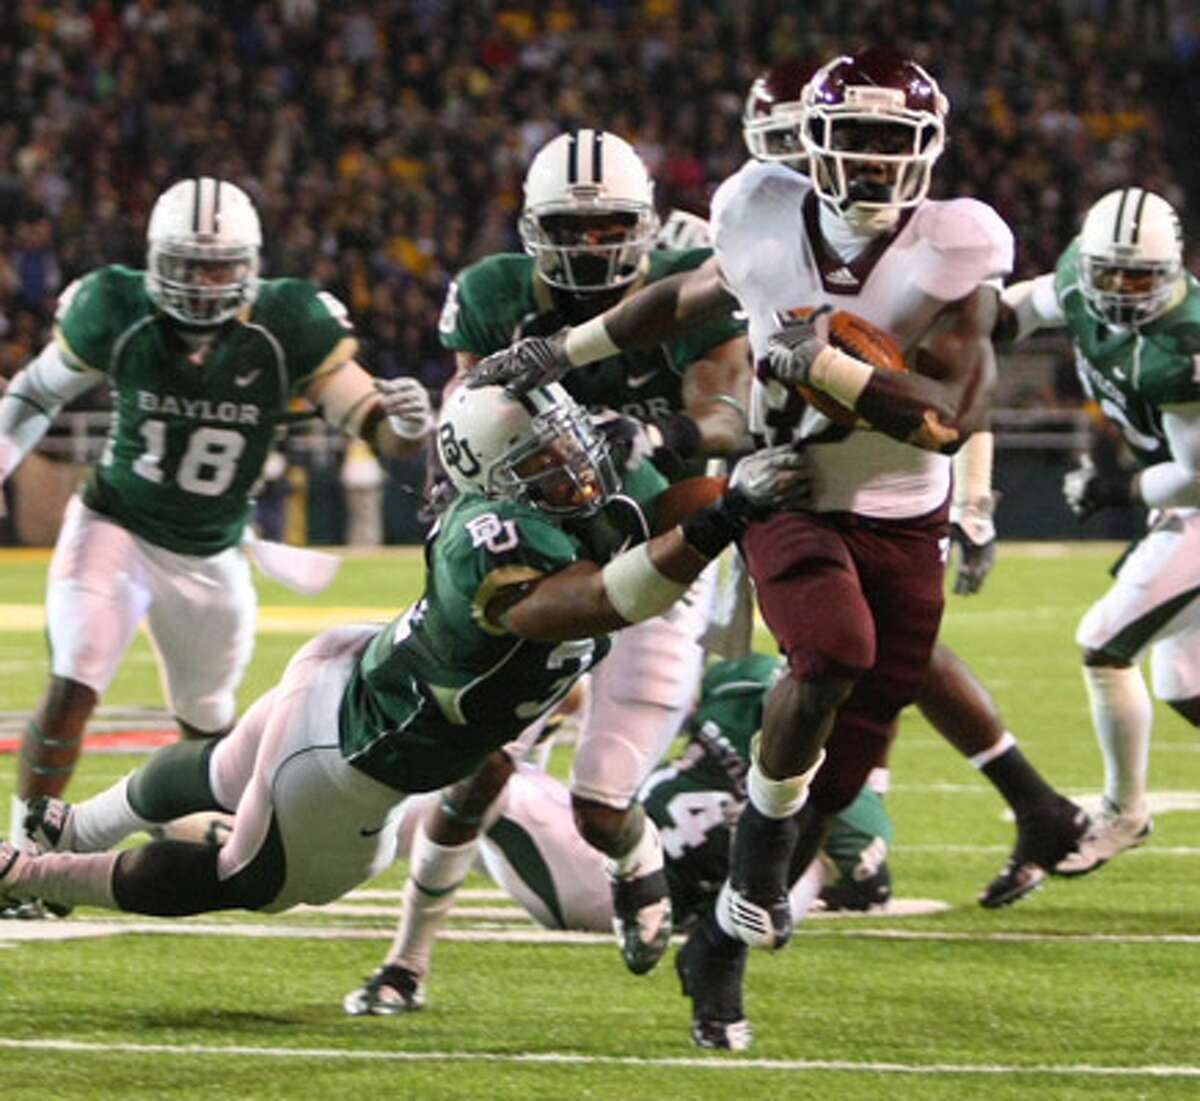 Texas A&M running back Cyrus Gray (right) scores one of his four touchdowns against Baylor and defender Chris McAllister.